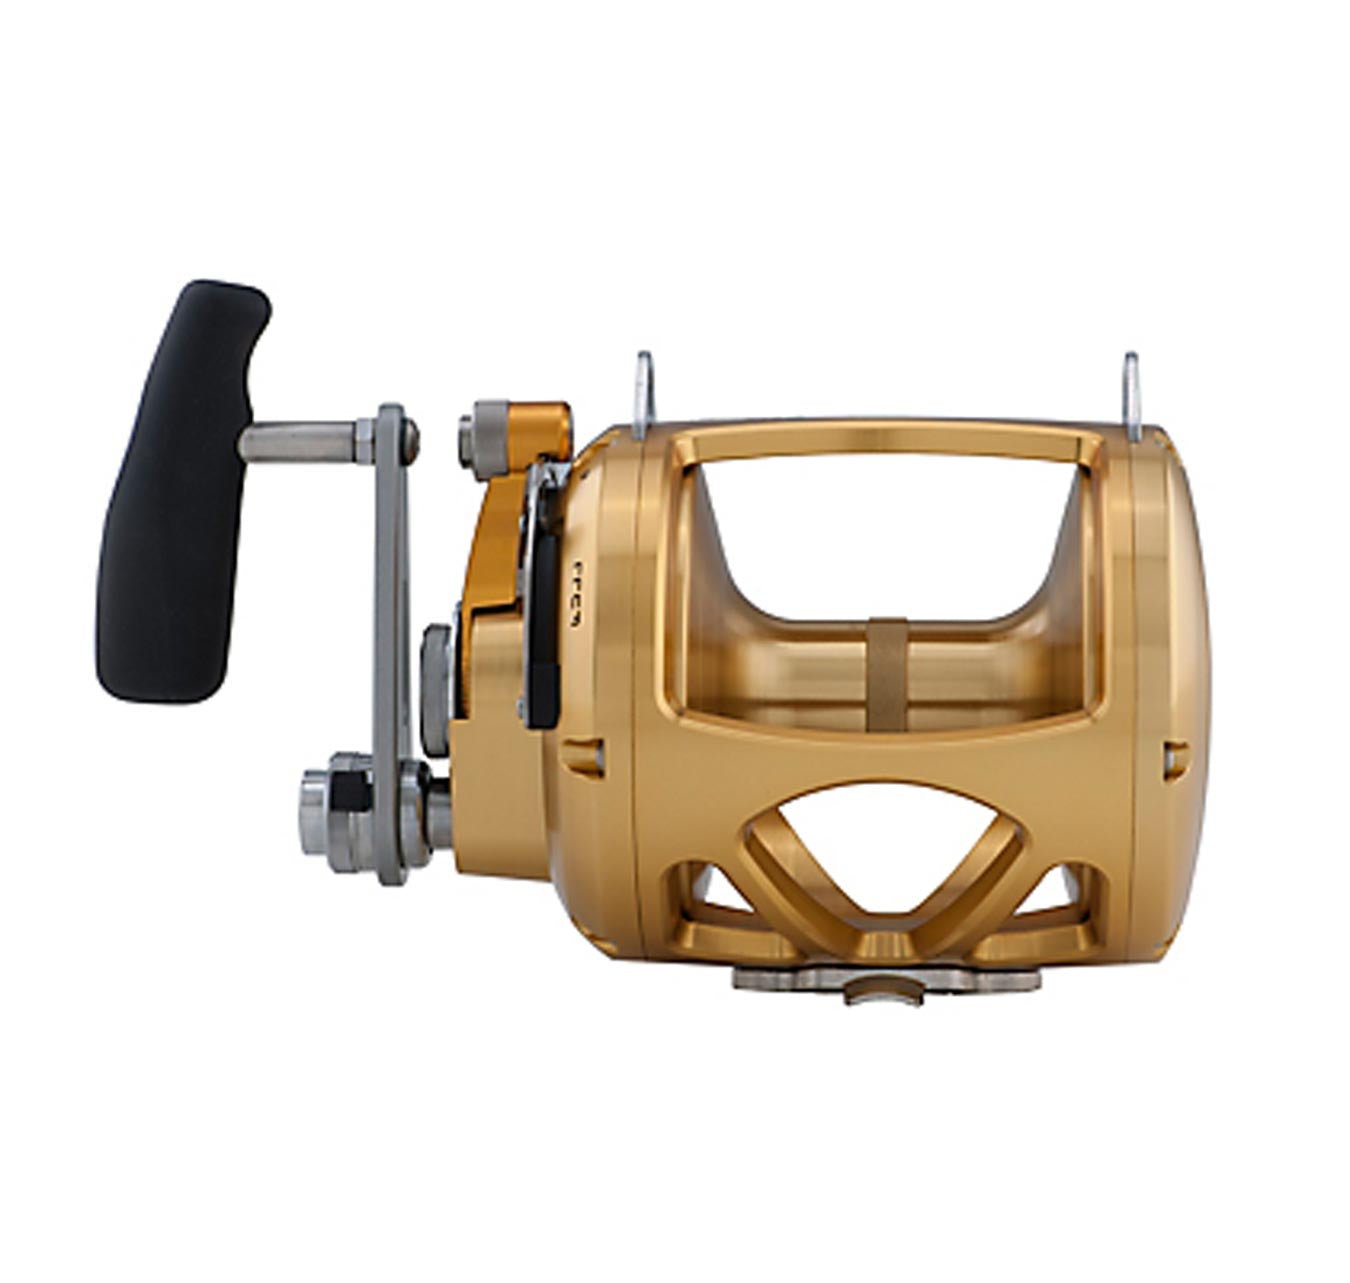 Penn International VISW Reels